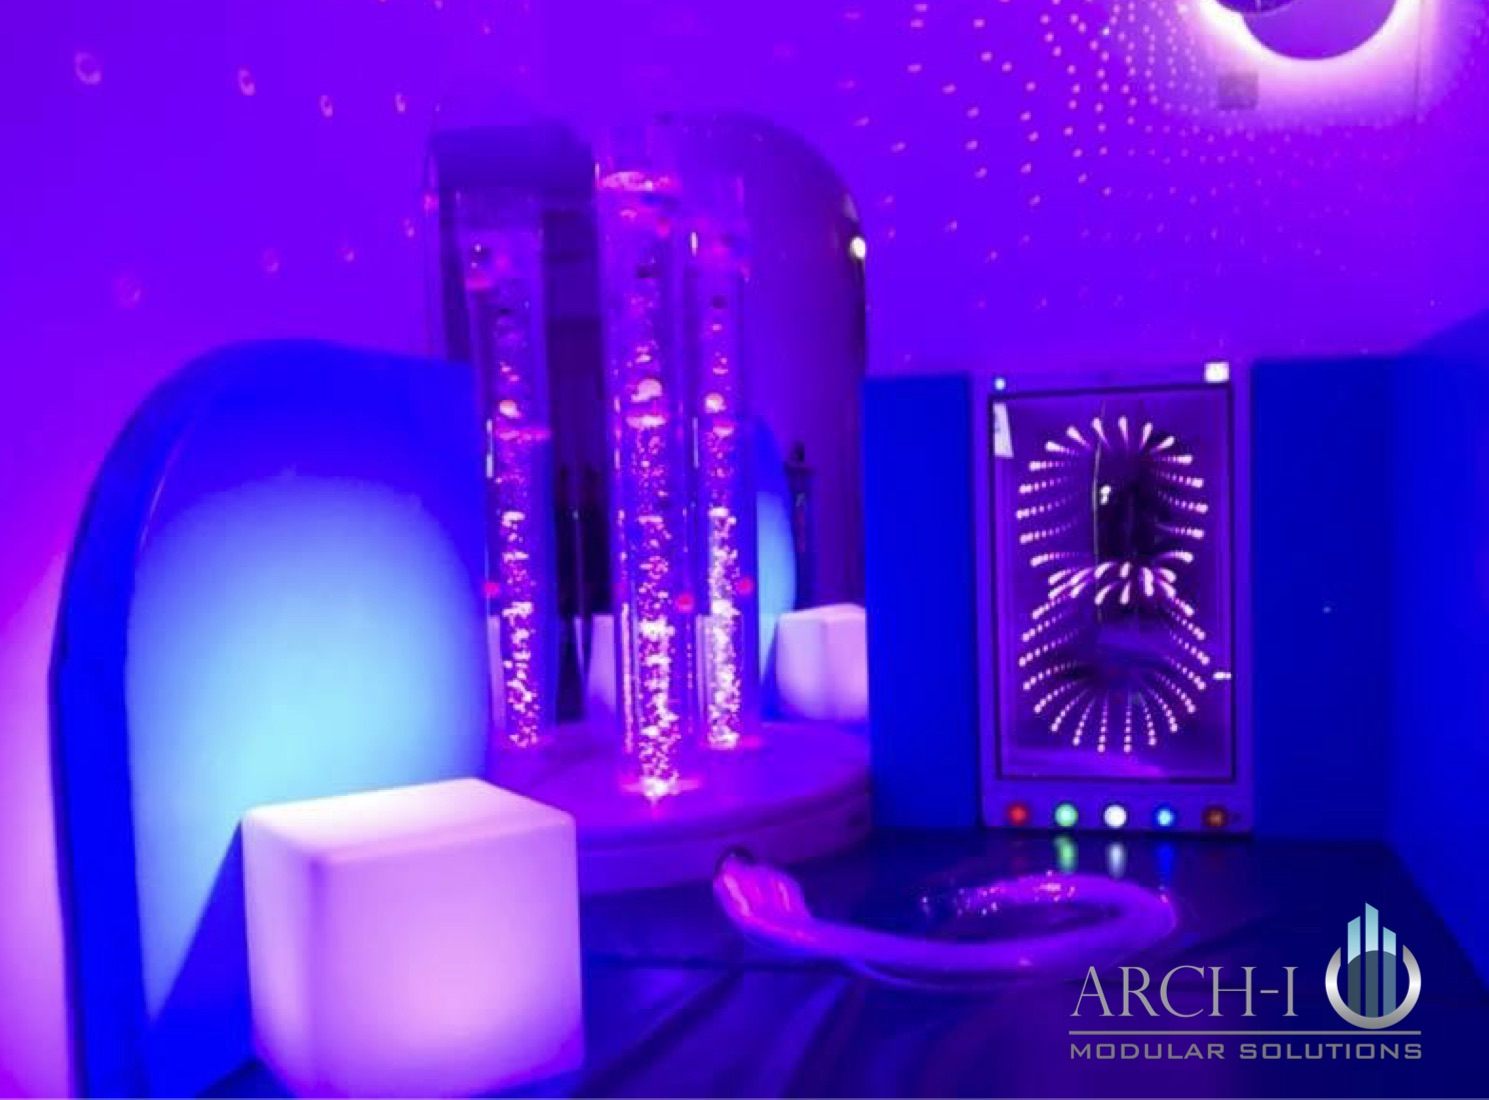 Modular structure functioning as a sensory room with purple and blue light and  water features